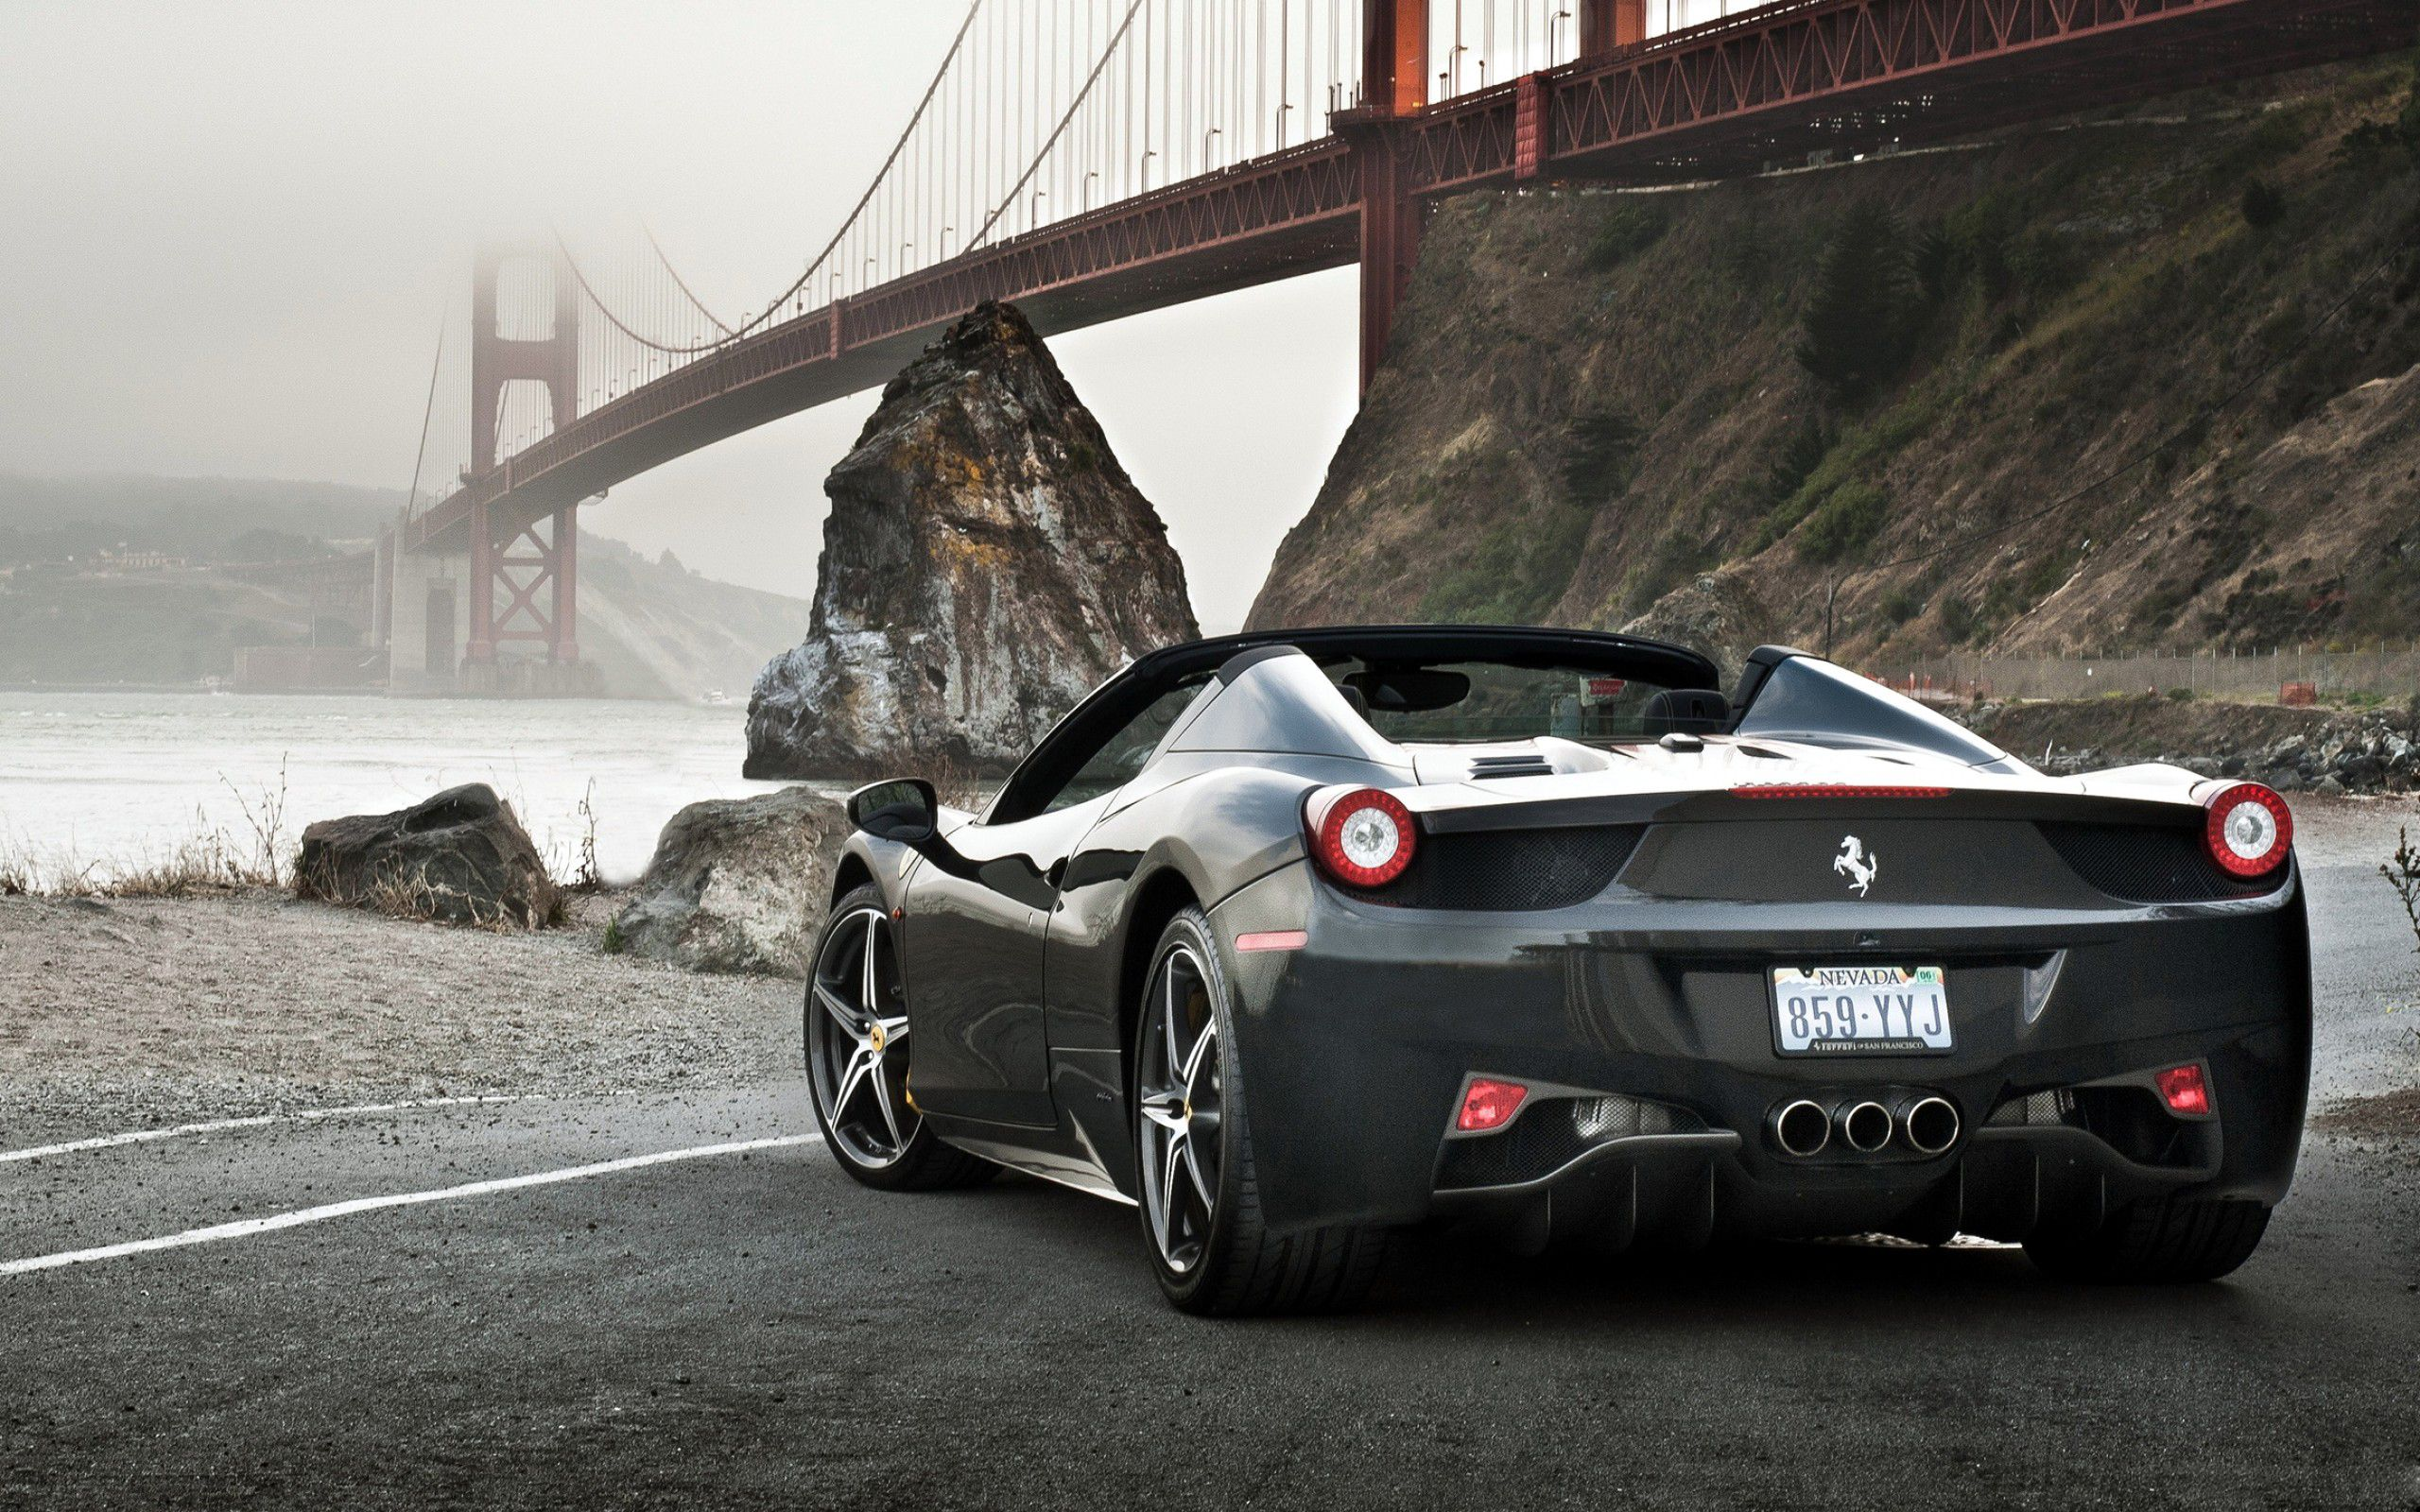 Black Ferrari Wallpaper Desktop #ymU